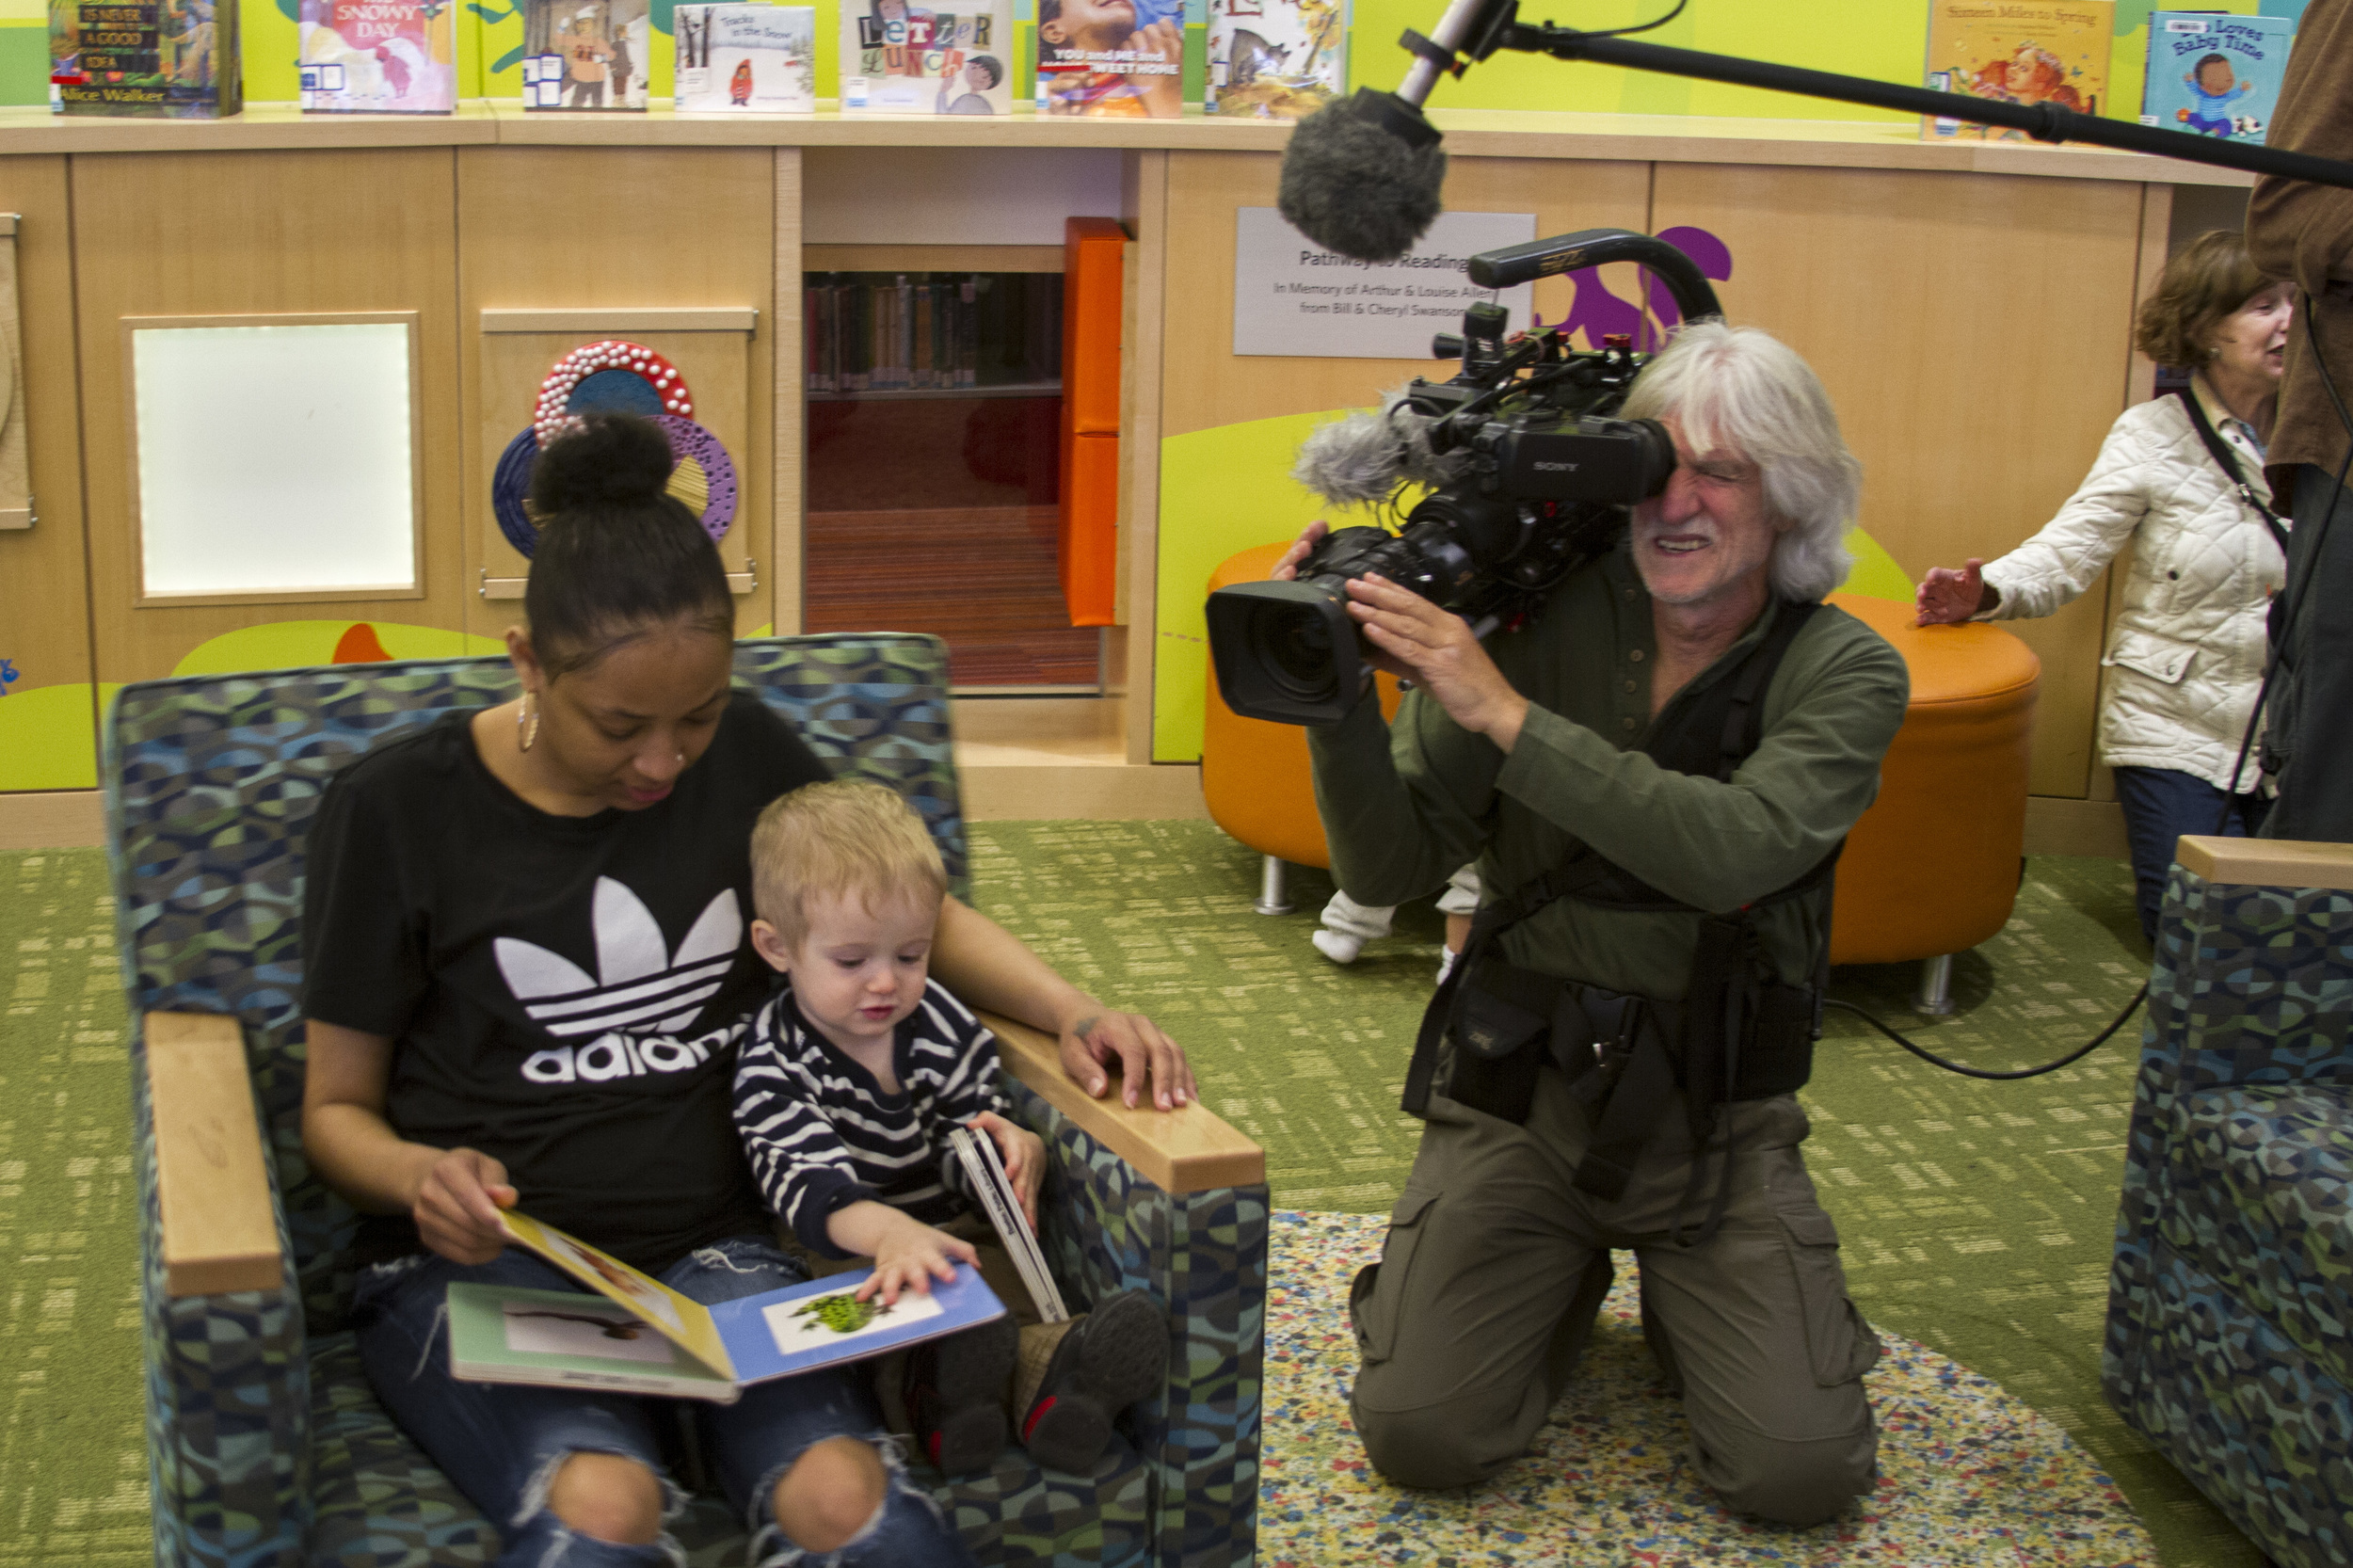 Director of Photography Vicente Franco films patrons in the children's section of the Boston Public Library's main branch.